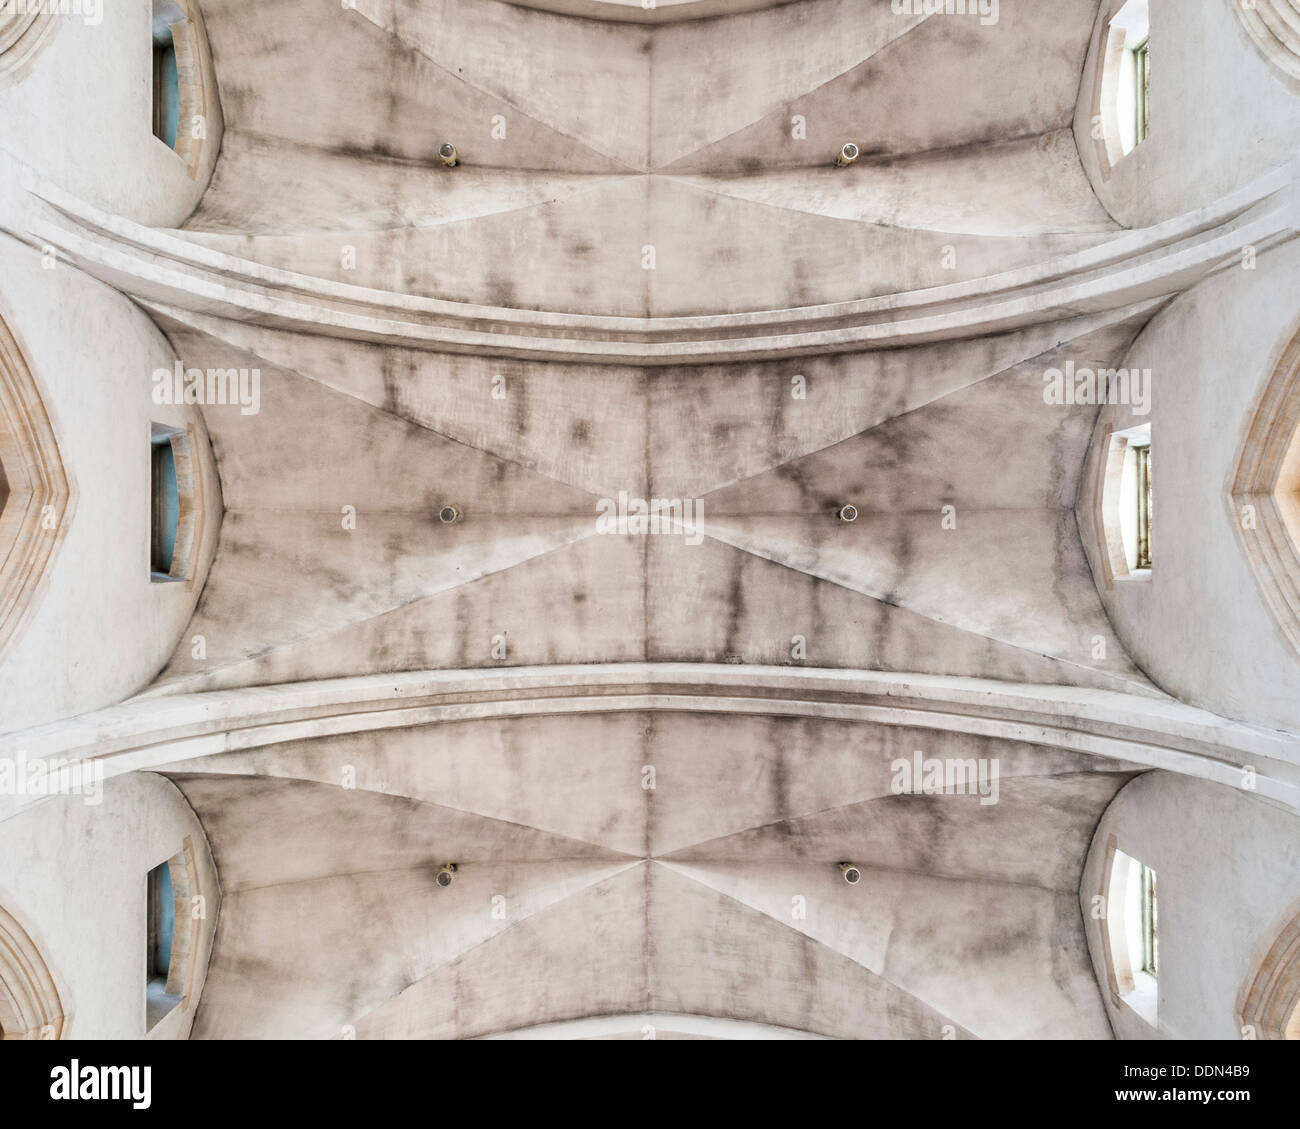 Guildford Cathedral, Guildford, United Kingdom. Architect: Sir Edward Maufe, 1961. Ceiling detail. Stock Photo